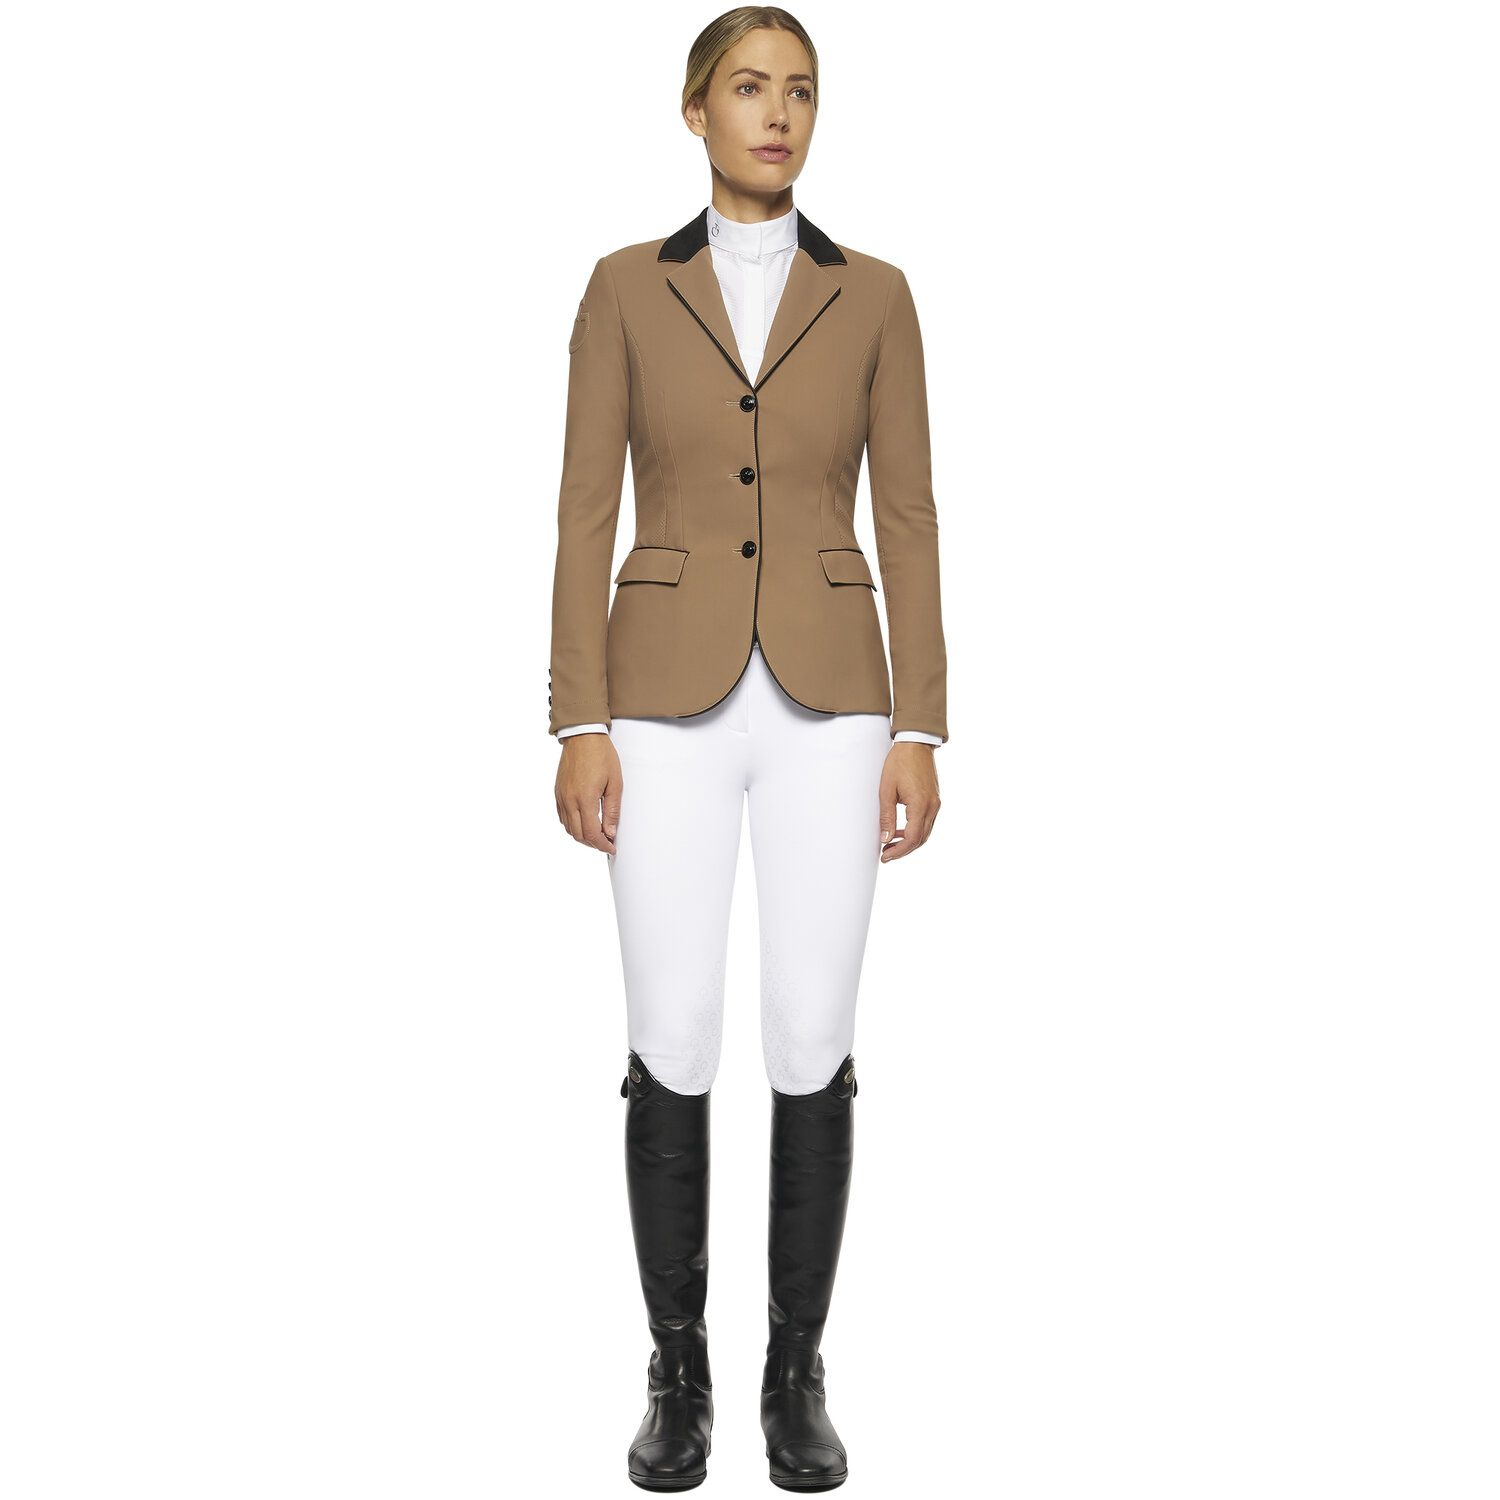 Women's perforated riding jacket